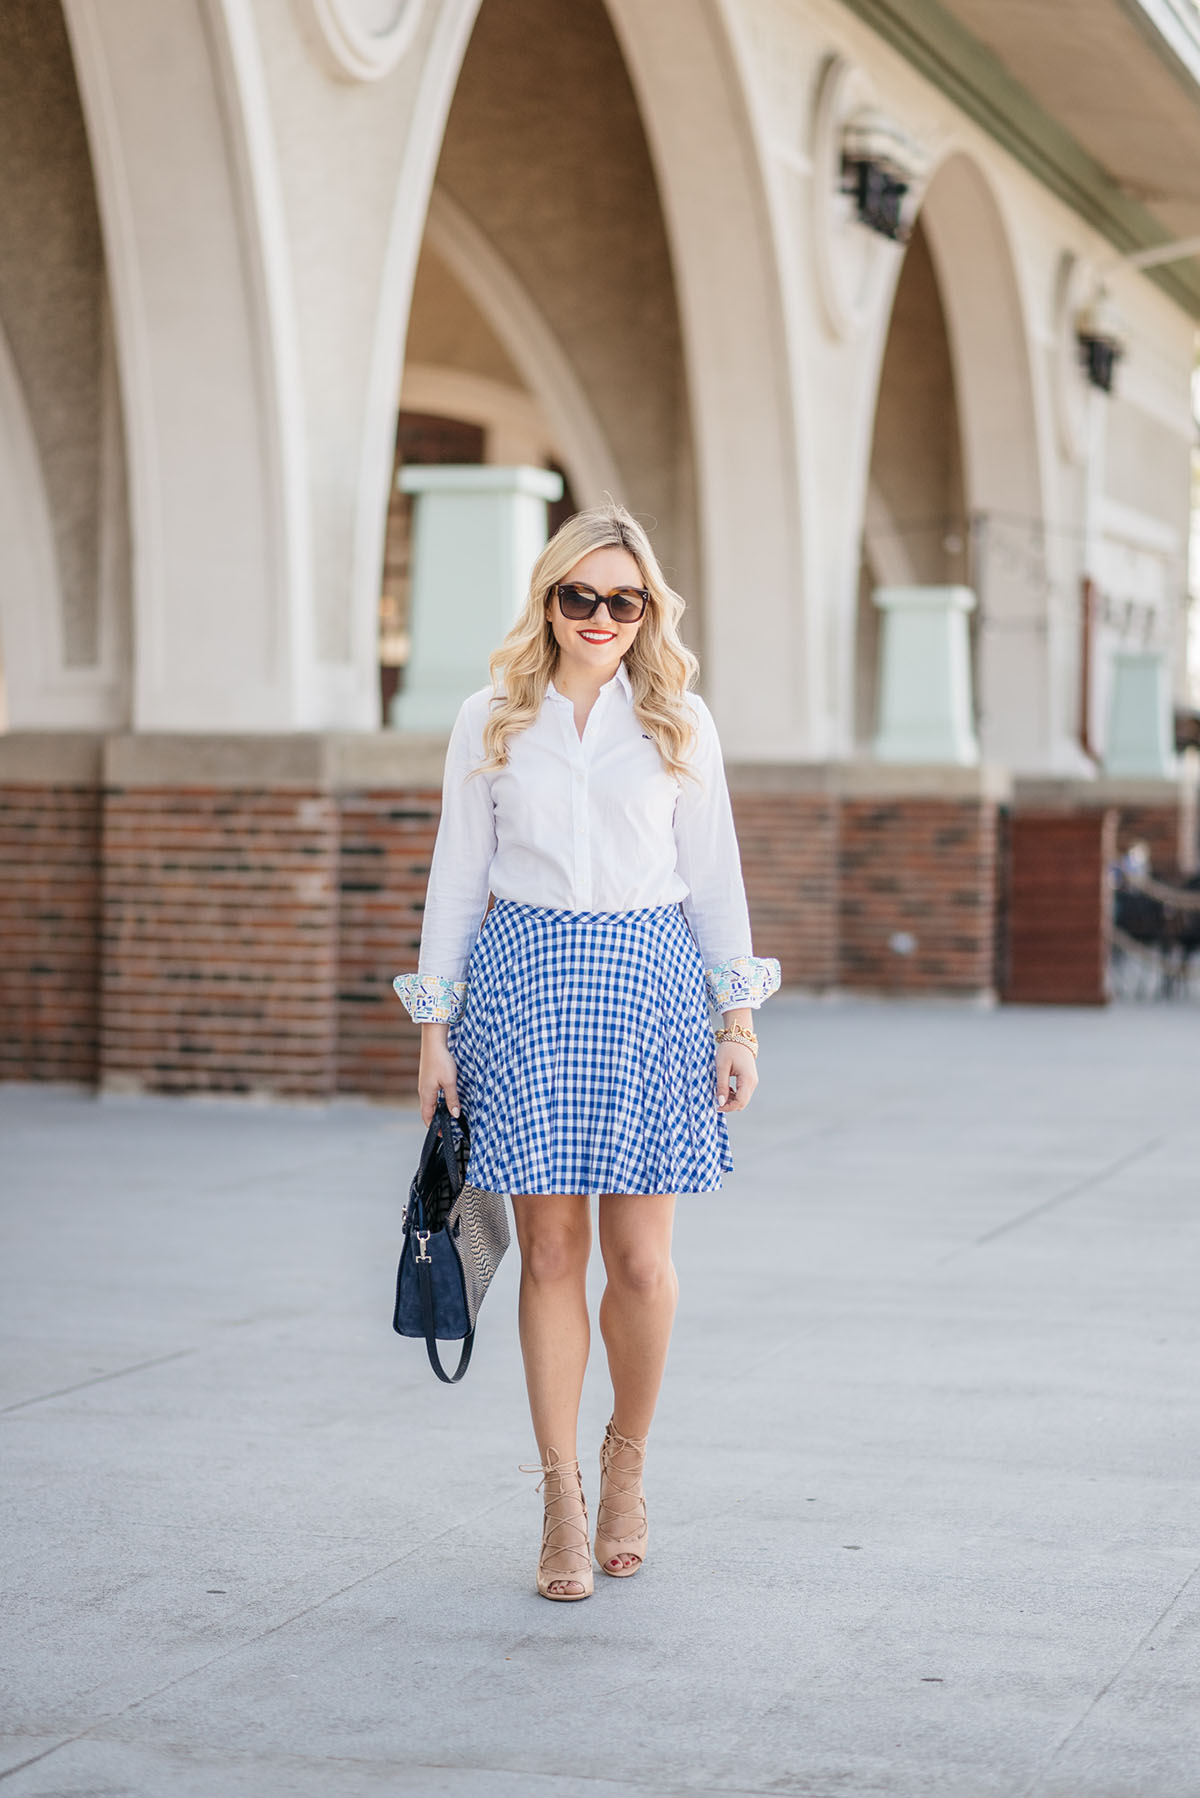 Bows & Sequins wearing a work outfit: White Oxford Shirt, Blue Gingham Skirt, Nude Lace-Up Heels, and a Navy Blue Kate Spade Bag.